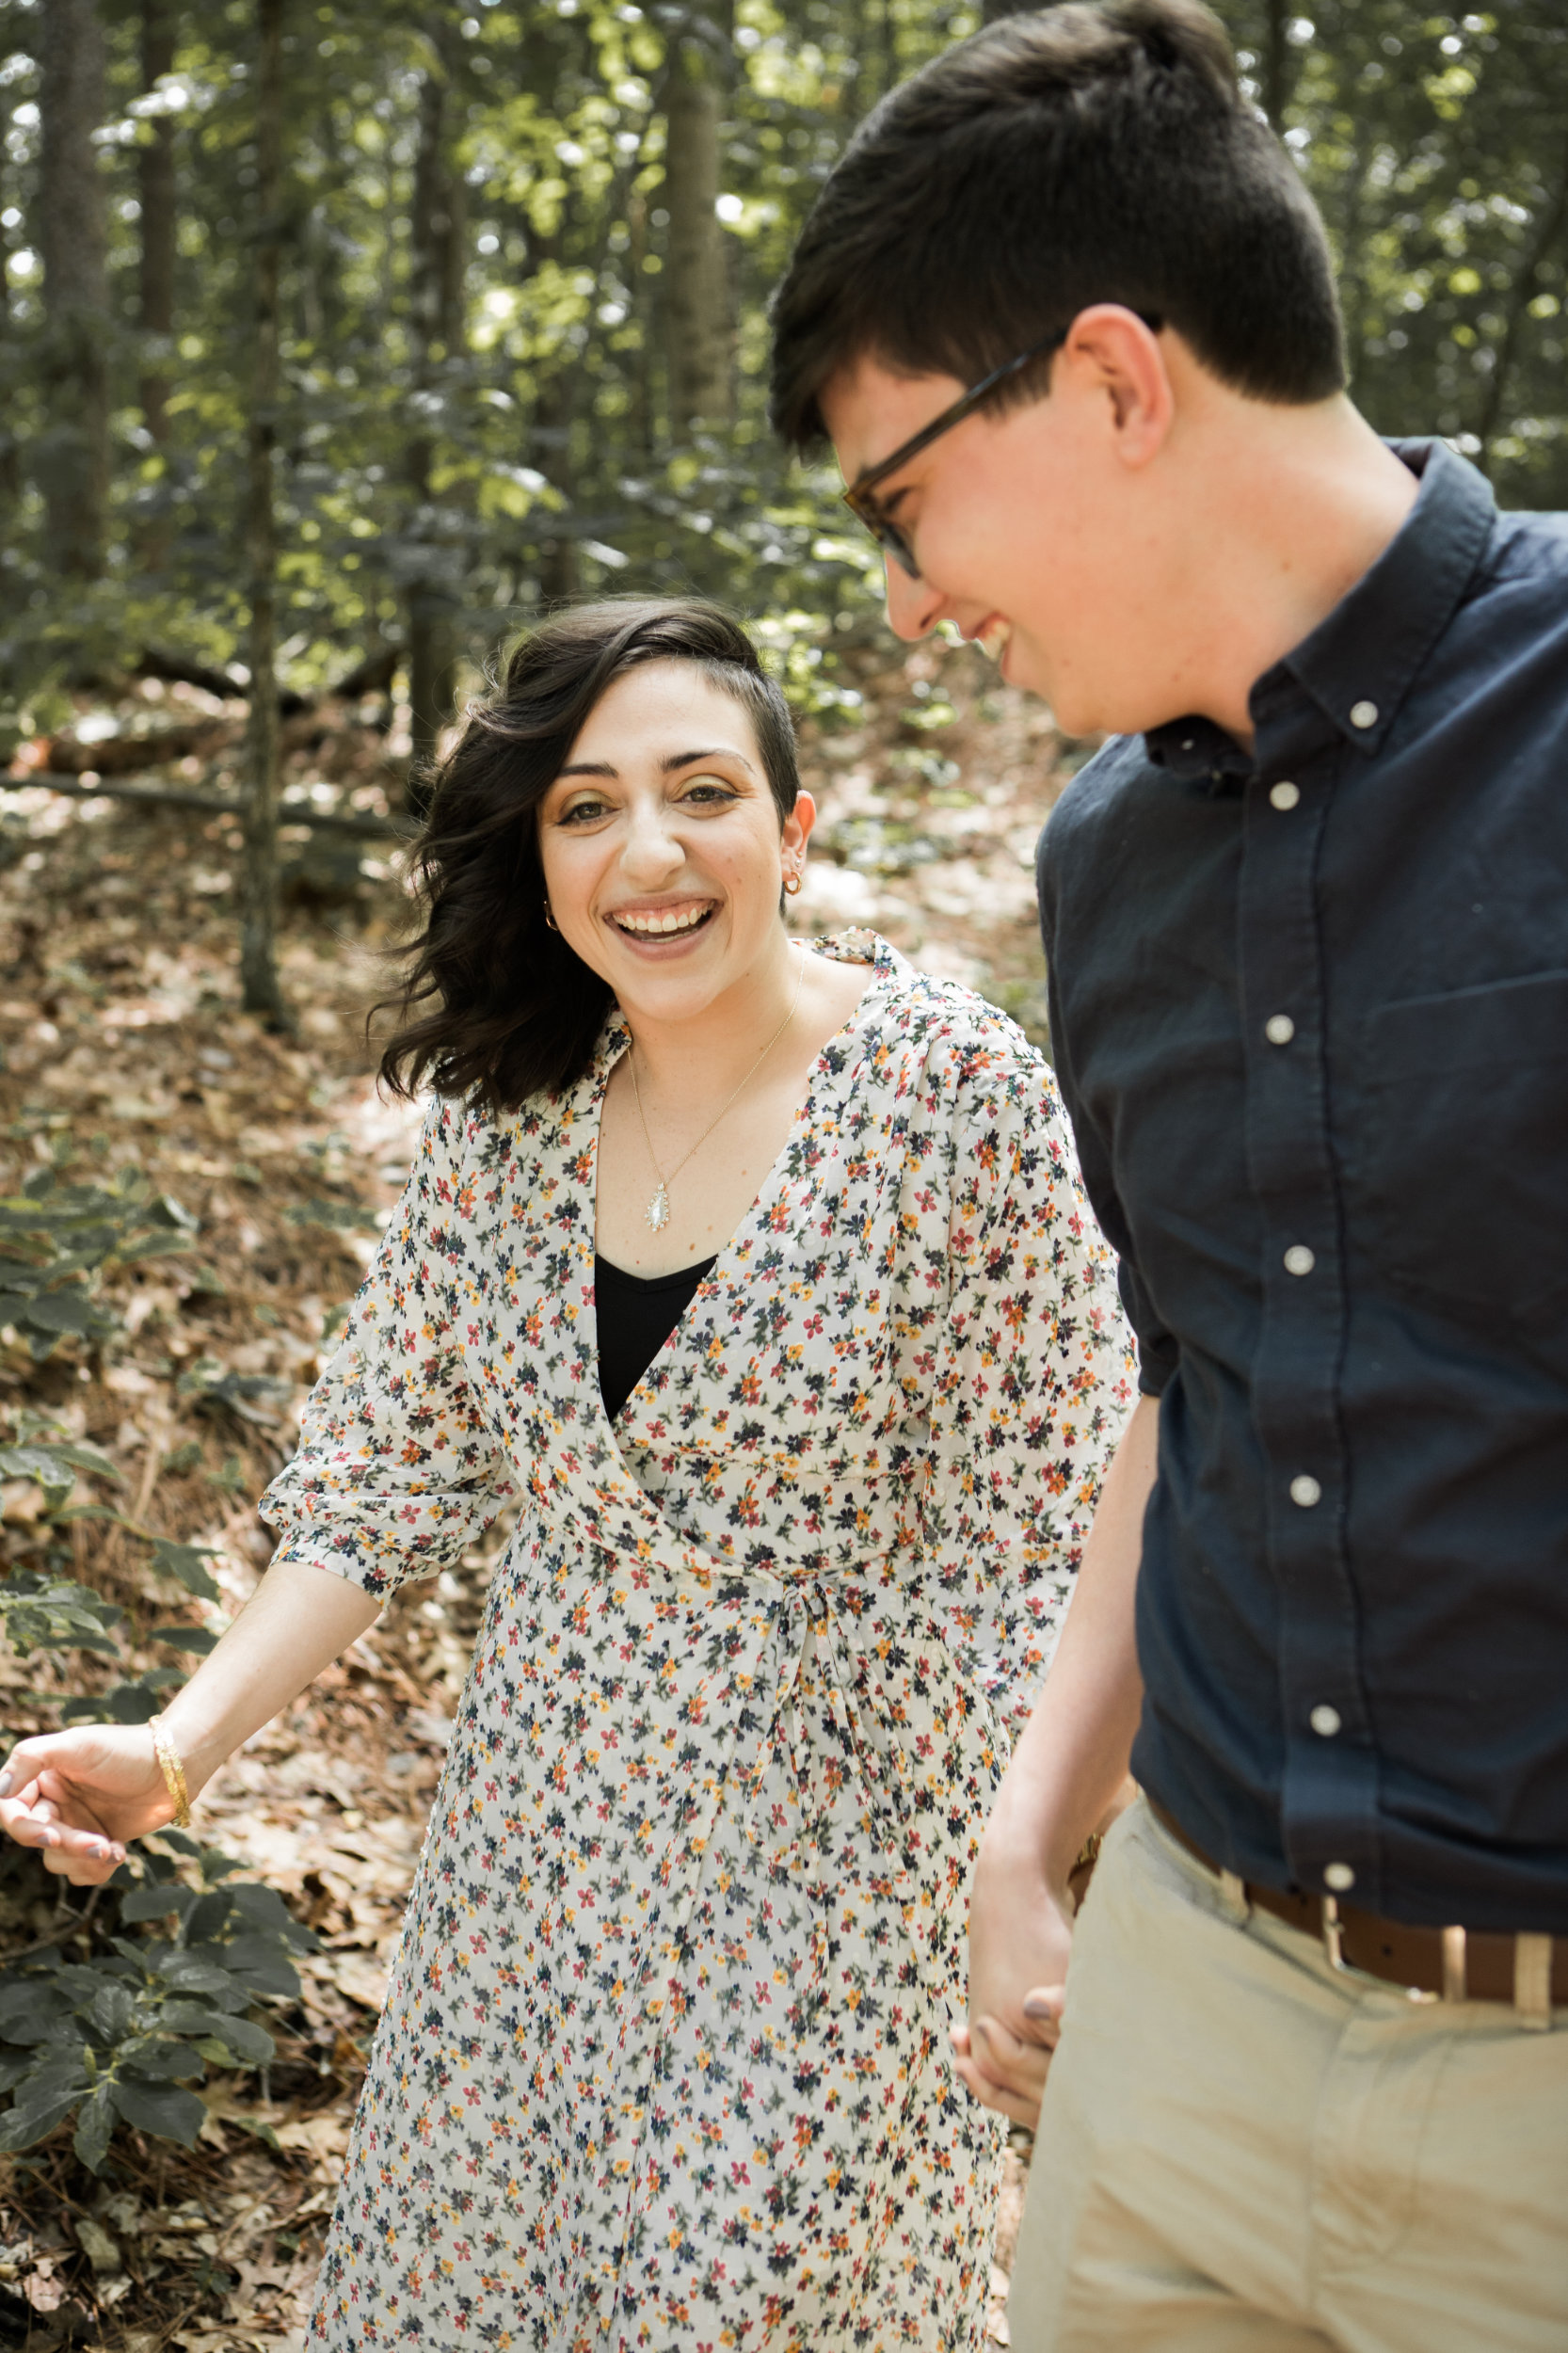 Moss Rock Preserve | Engagement Session | Zach and Michelle